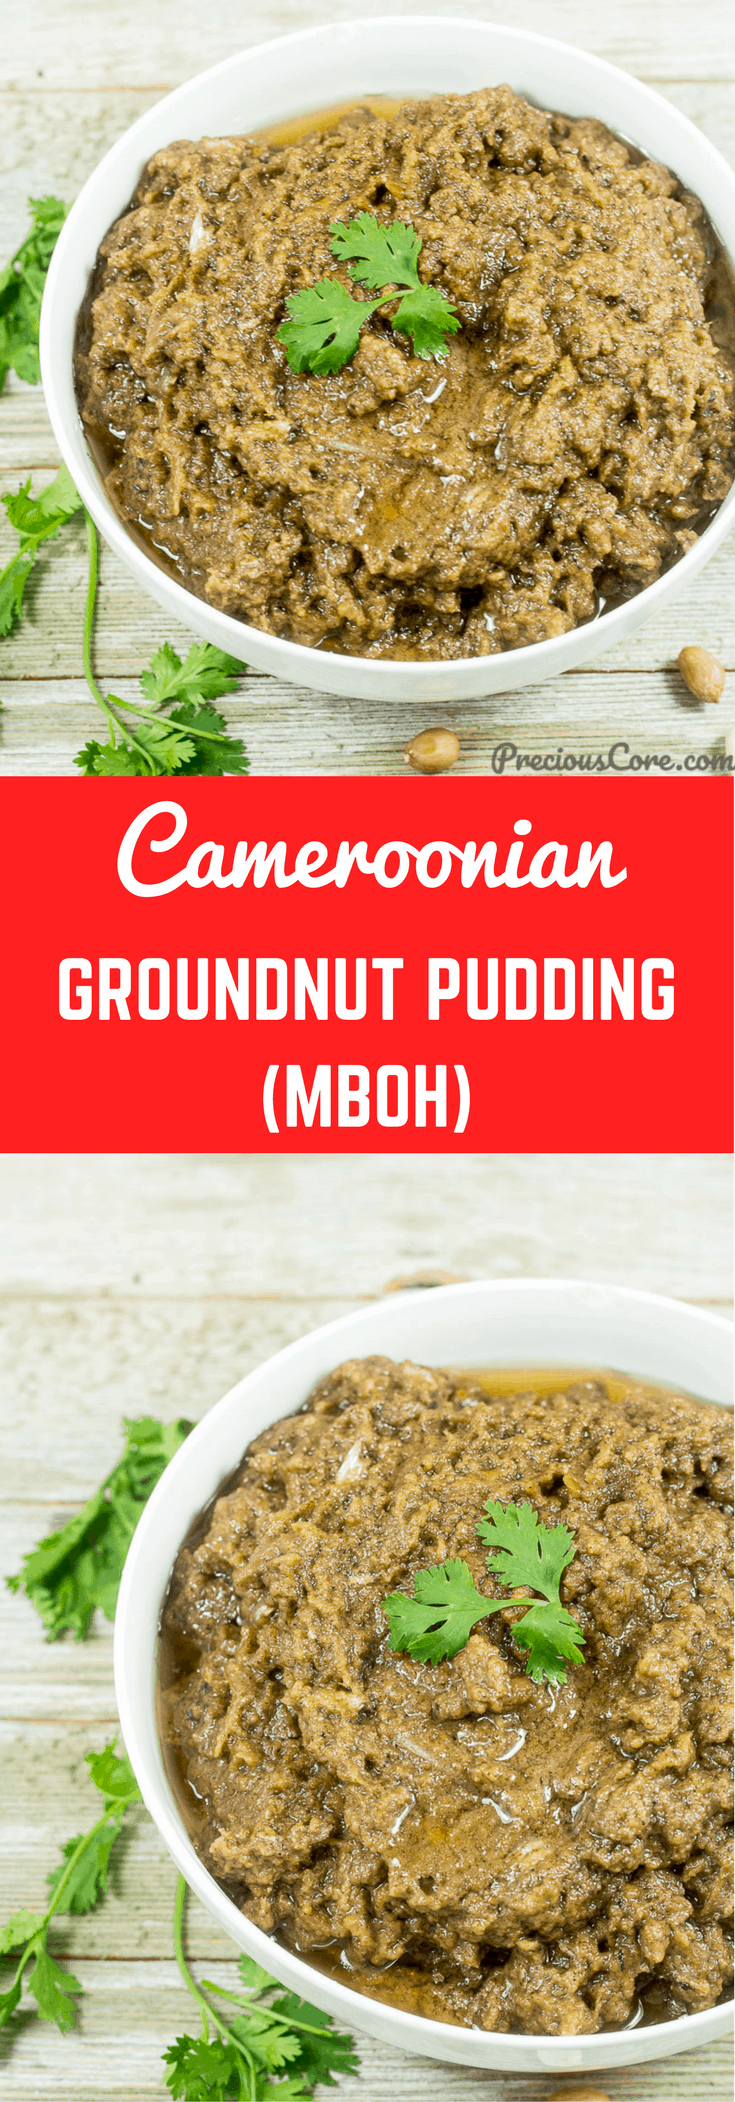 "Cameroonian groundnut paste, also known as ""Mboh"" is a pudding-like savory meal made with roasted peanuts. It is spicy, peanuty and insanely good! Get the recipe on PreciousCore.com"